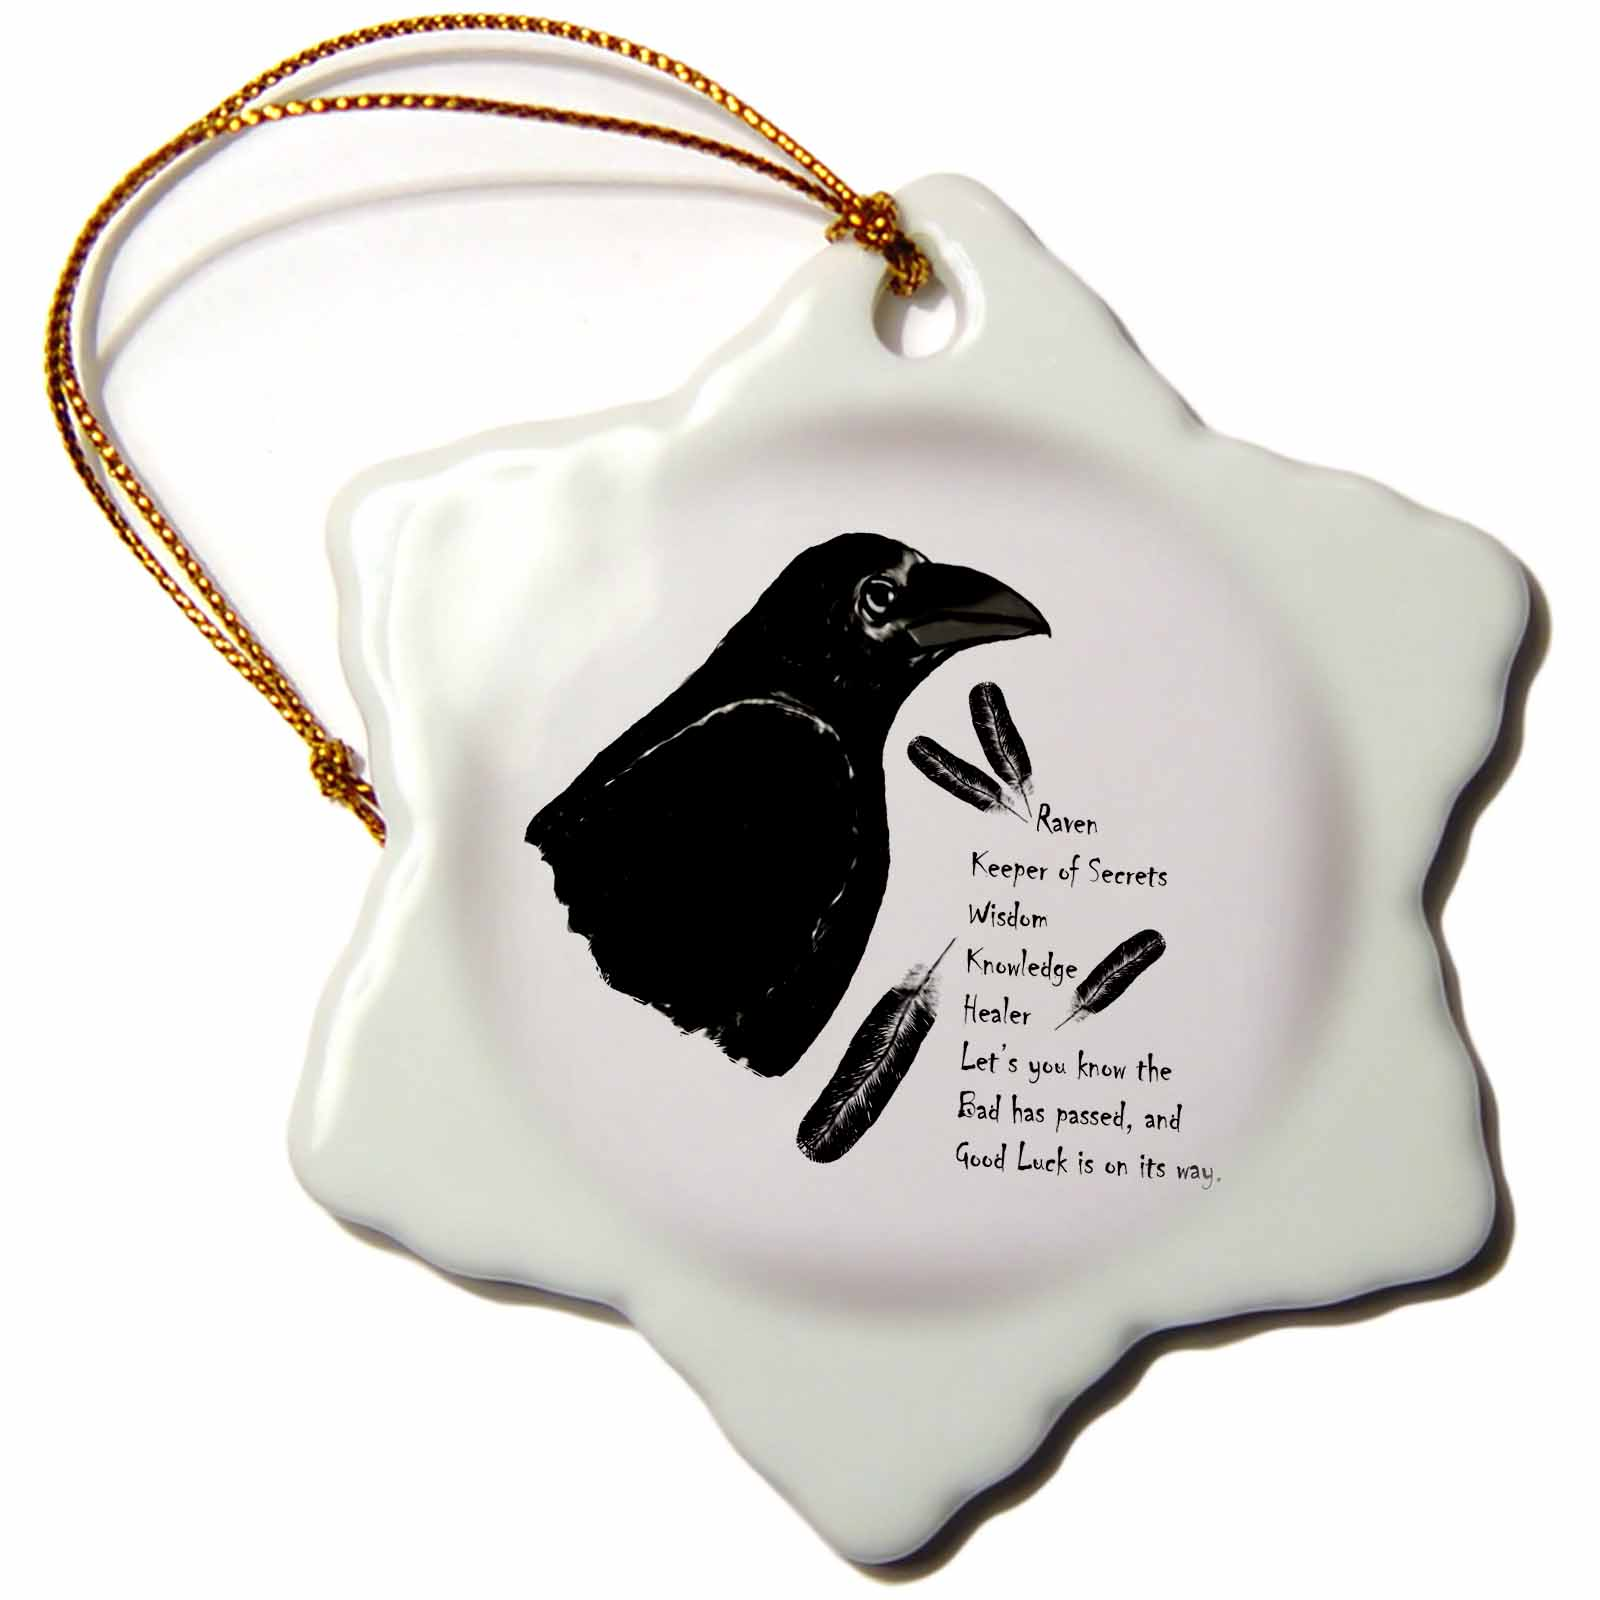 3dRose Meaning of Raven is a picture I drew with Native American Beliefs, Snowflake Ornament, Porcelain, 3-inch